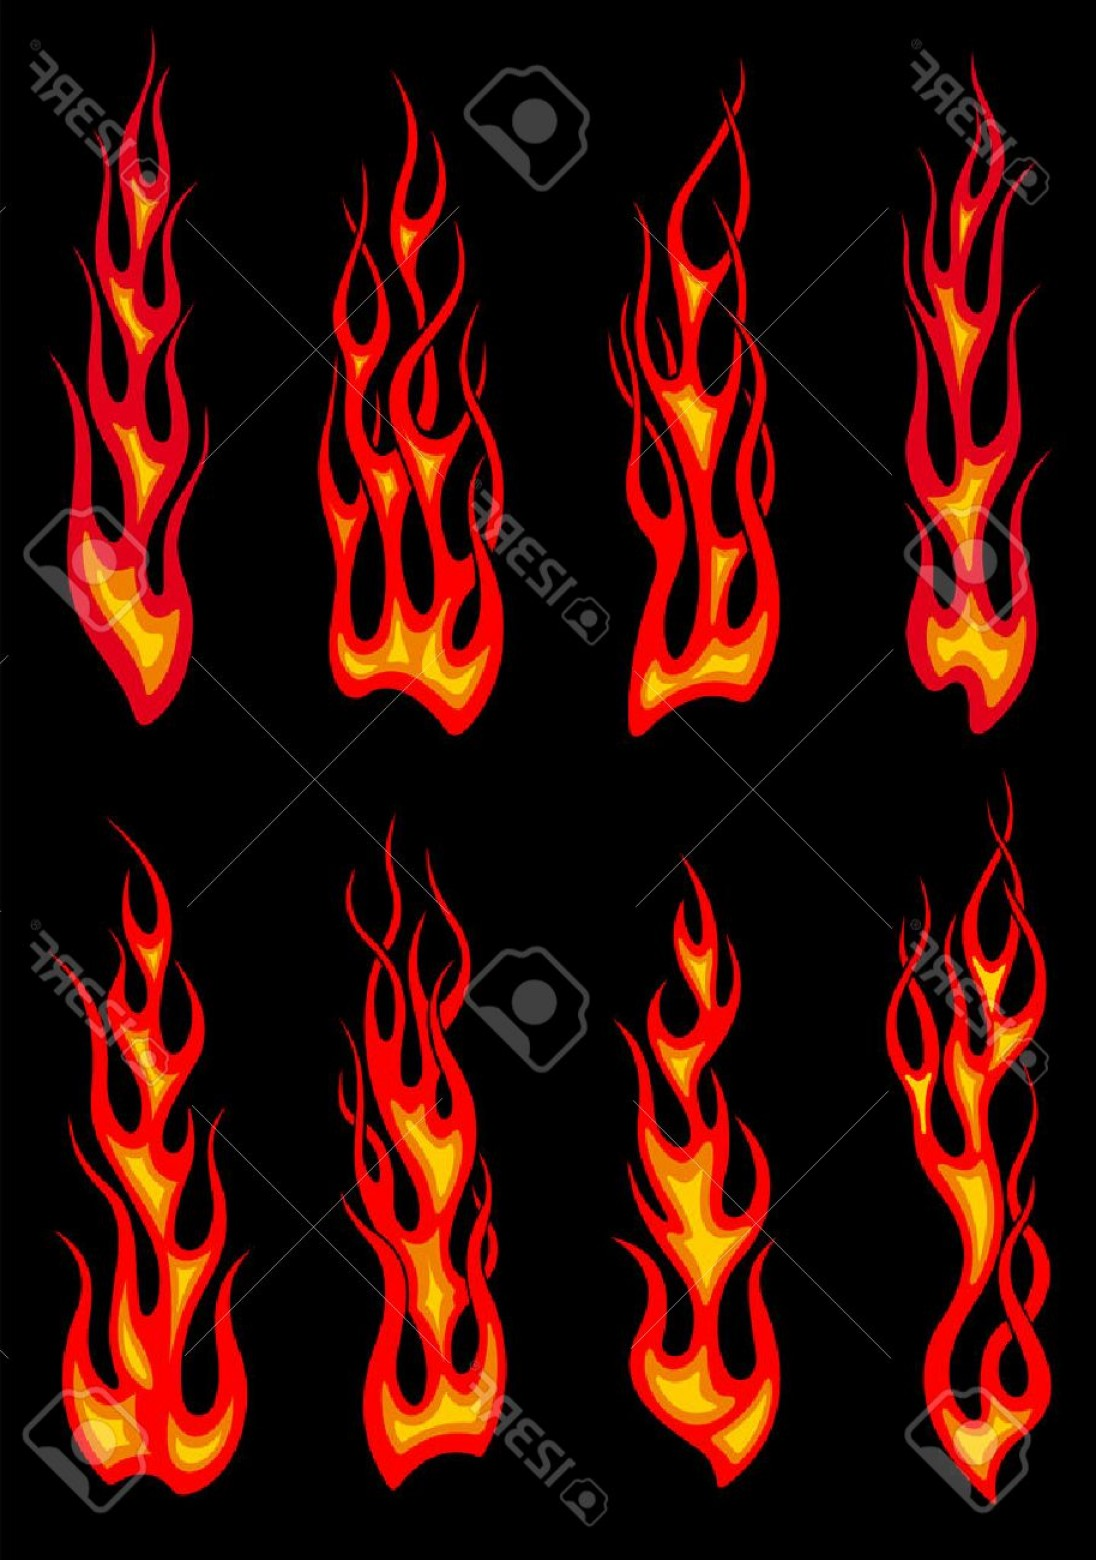 Tribal Flames Vector Car: Photostock Vector Hot Orange Tribal Fire Flames Isolated On Black Background For Tattoo Or Car And Motorcycle Decorati